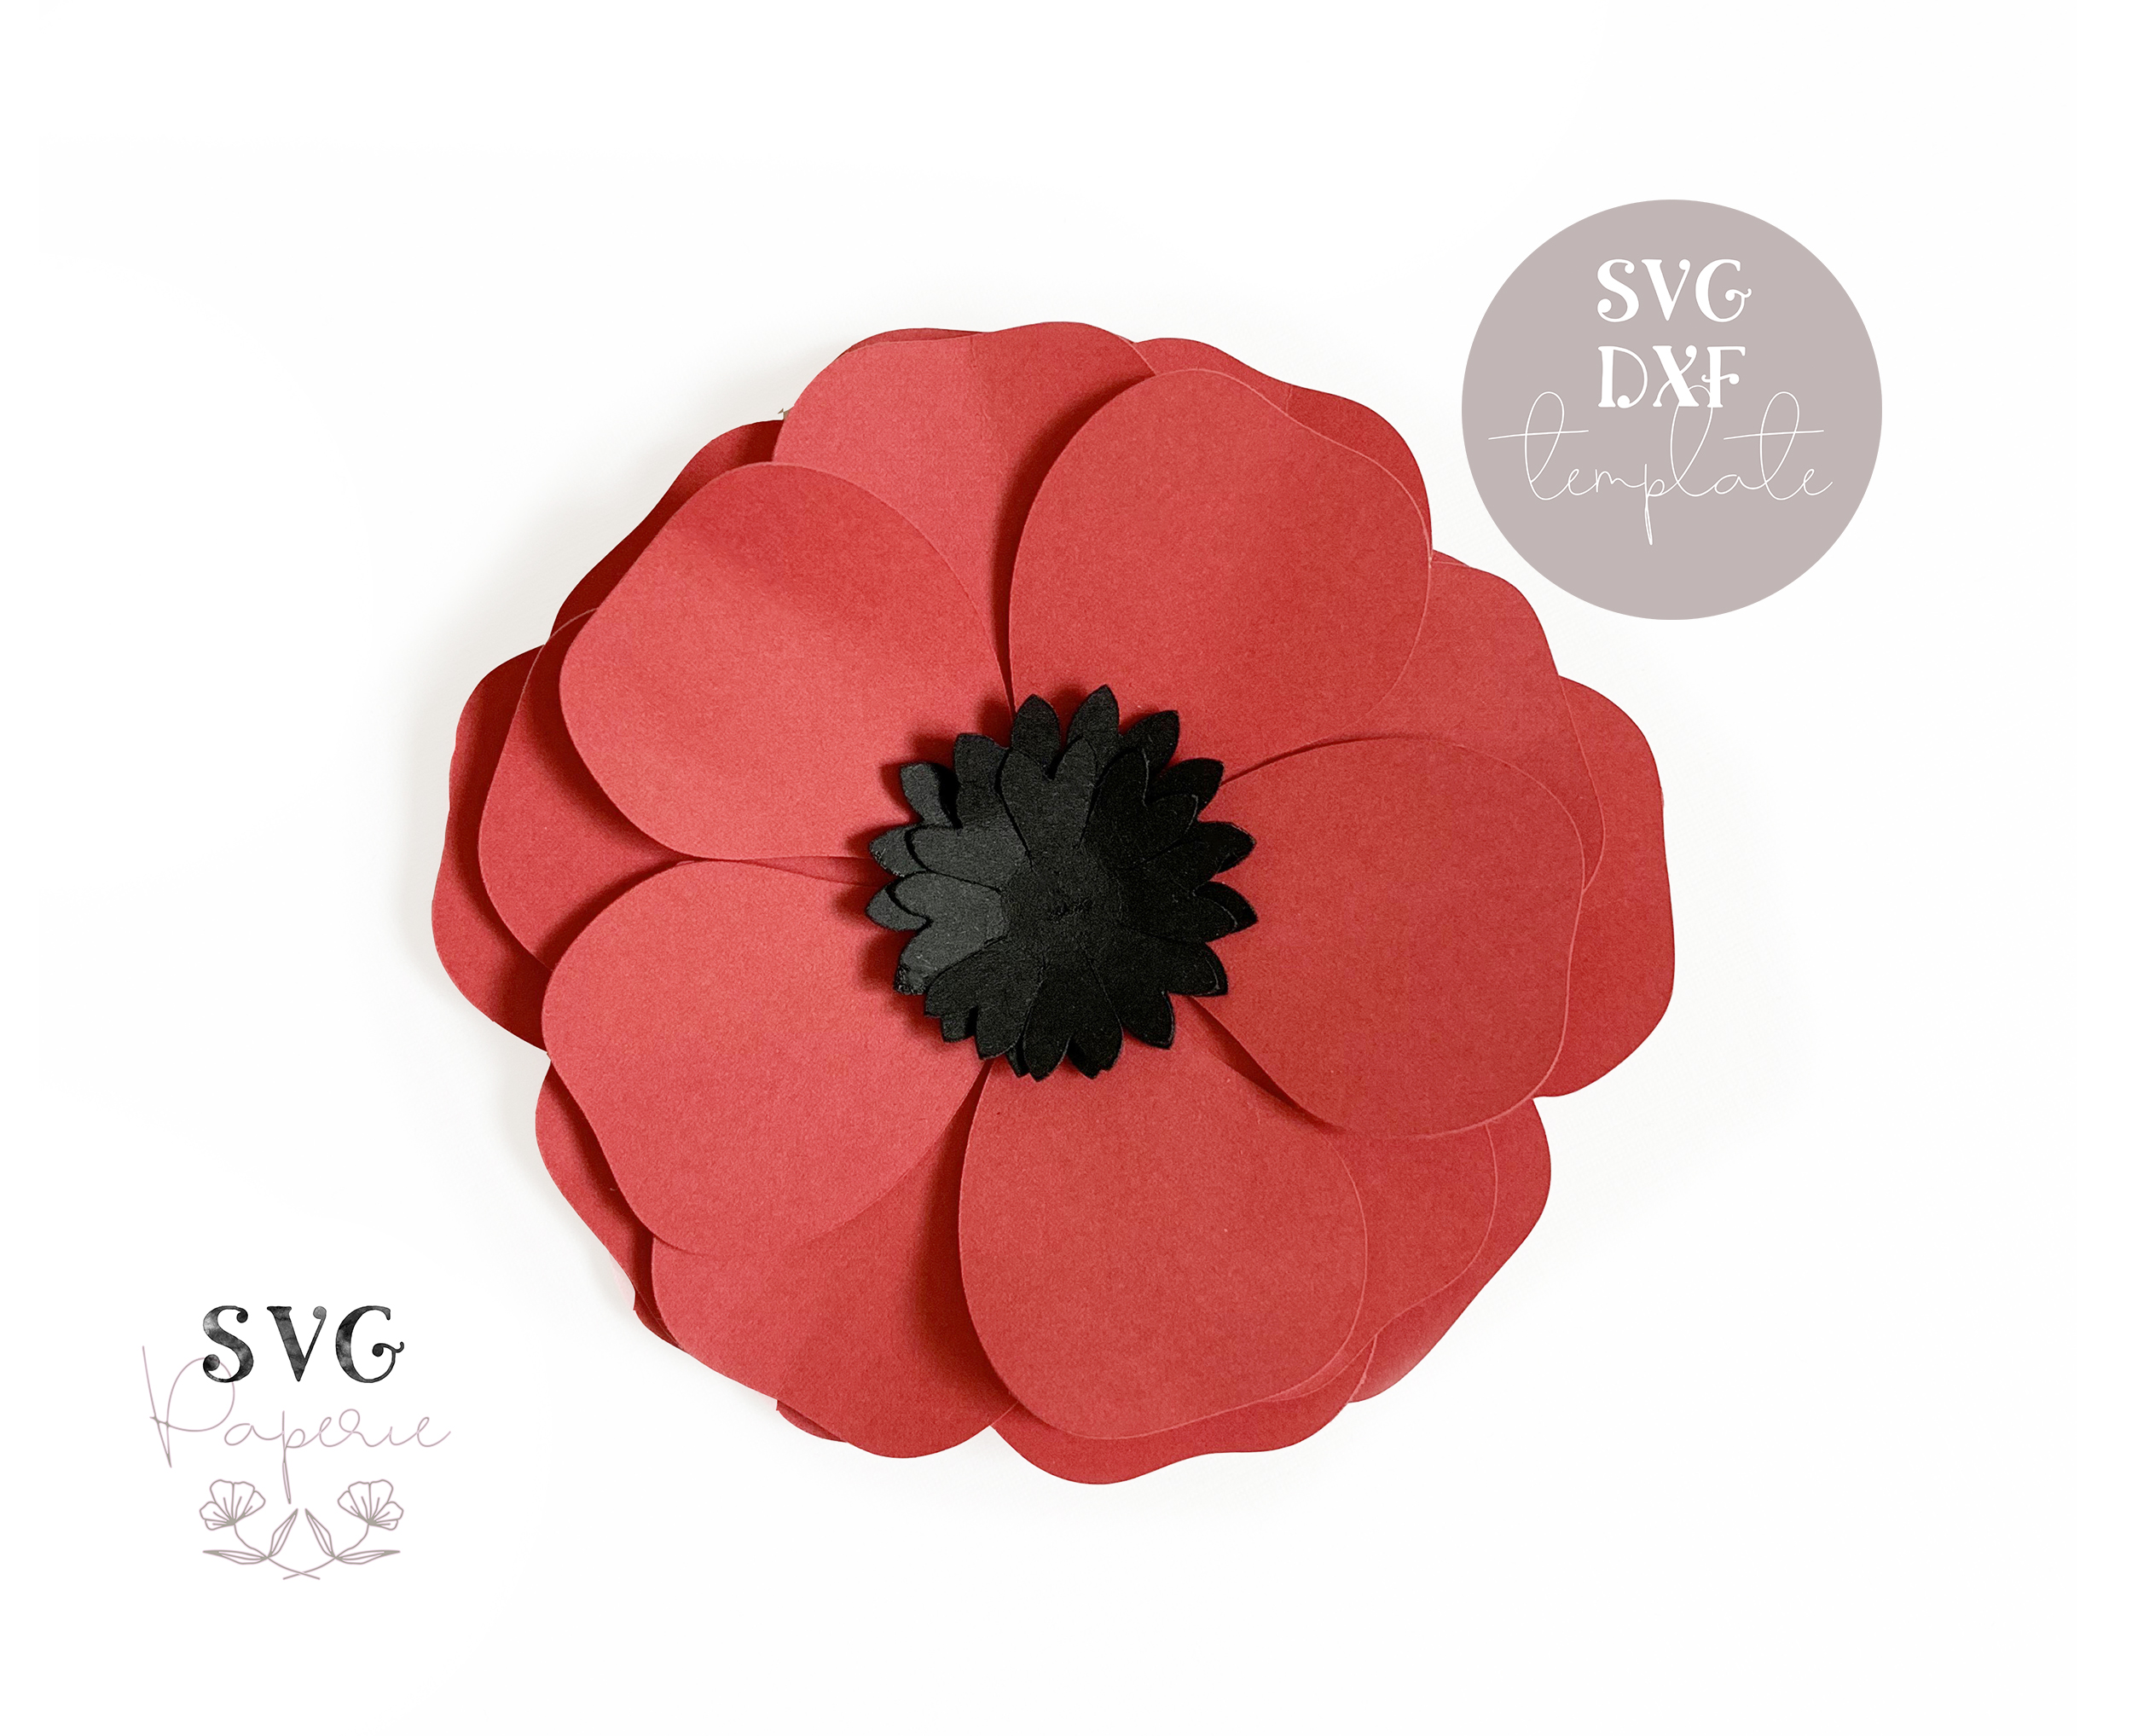 3D Paper Poppy Flower SVG Template, Cricut and DXF included — SVG BUNDLES  CO